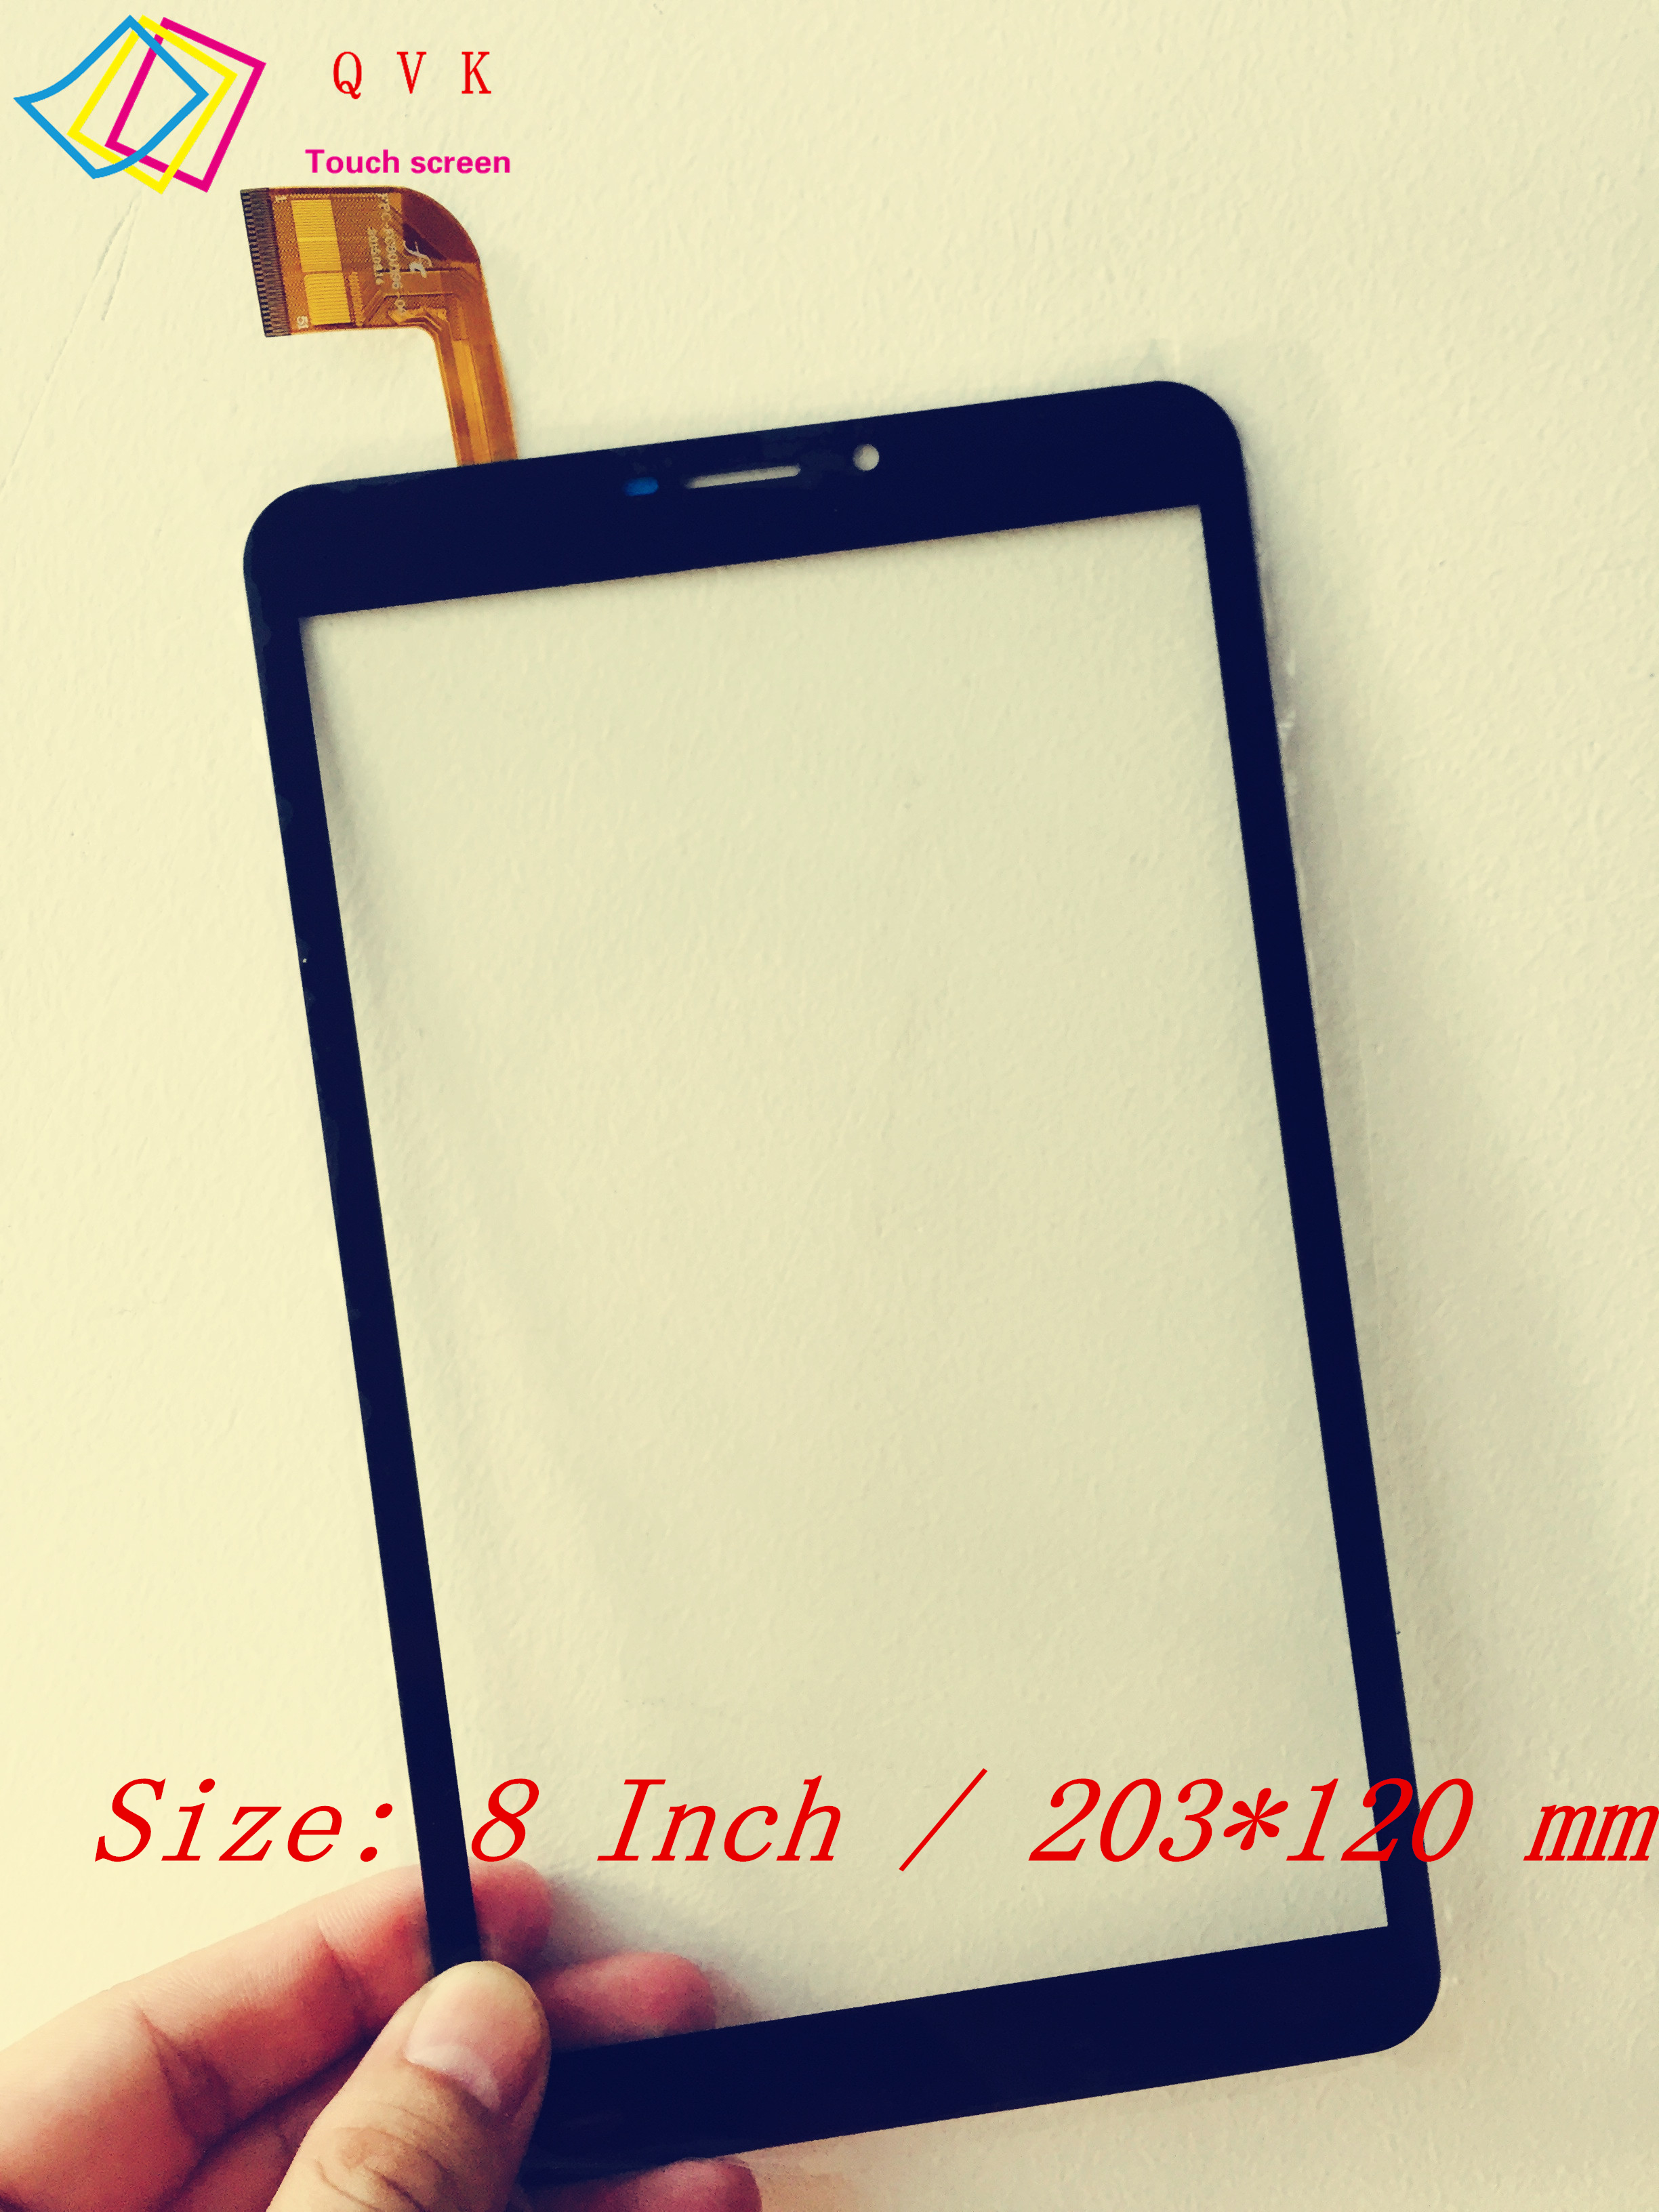 Black 8 Inch for Digma Optima 8100R 4G TS8104ML tablet pc capacitive touch screen glass digitizer panel Free shipping balck 7inch for megafon login 4 lte mflogin4 login 4g tablet pc hk70dr2671 v02 capacitive touch screen glass digitizer panel